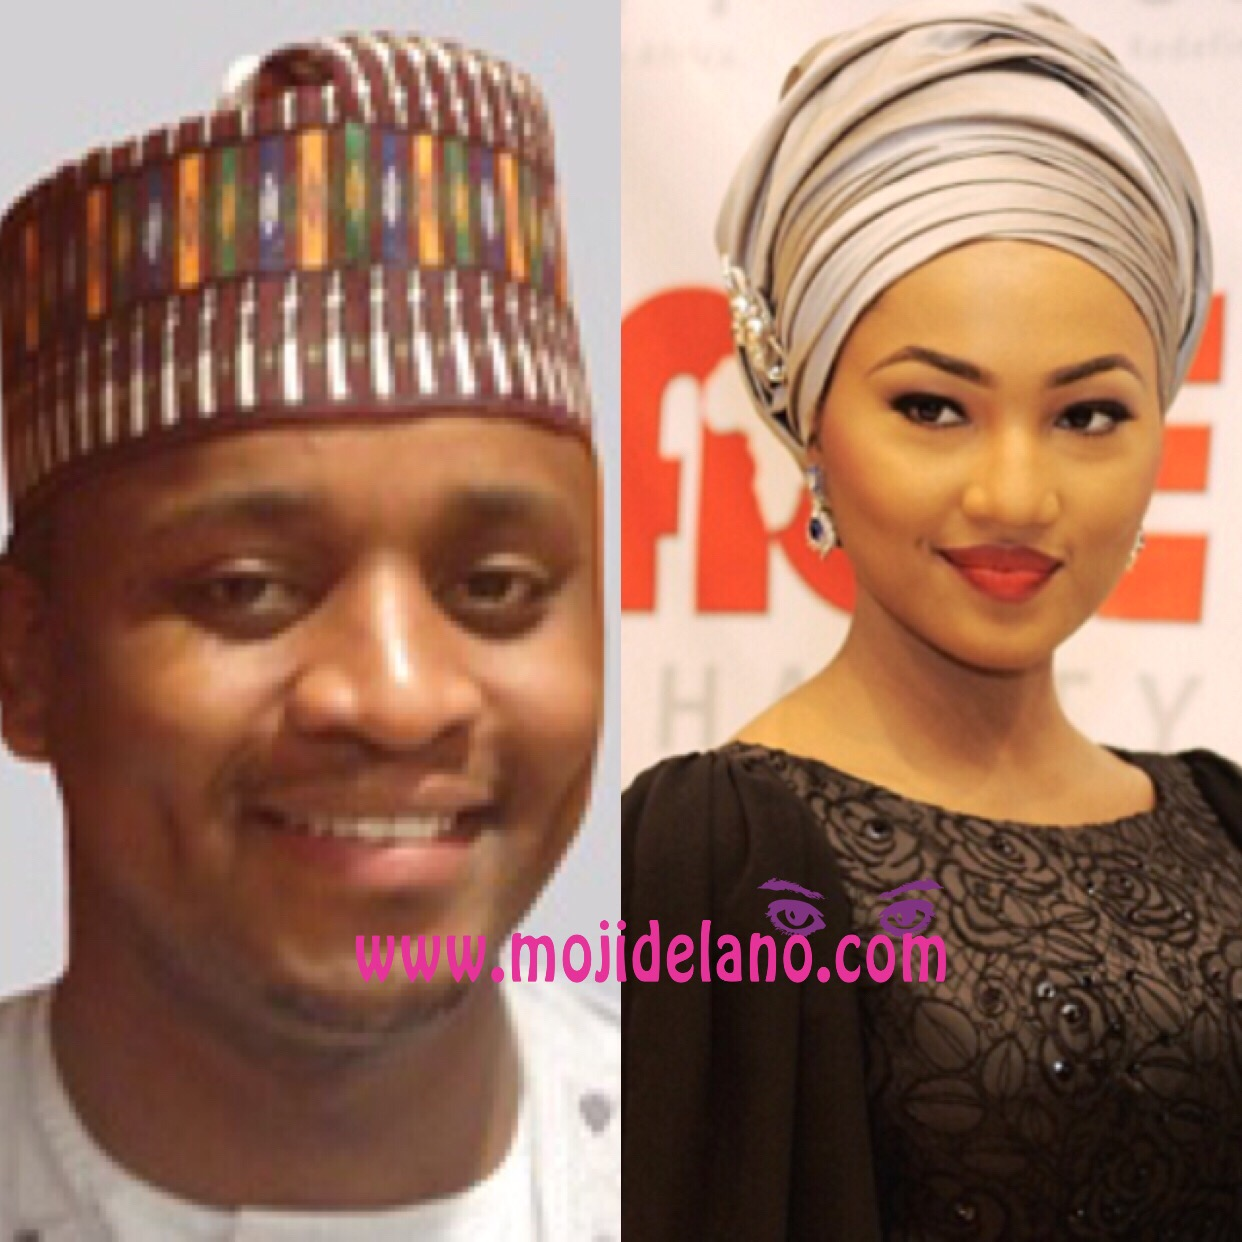 Wedding Bells! President Buhari's Daughter Zahra Set To Wed Ahmed Indimi